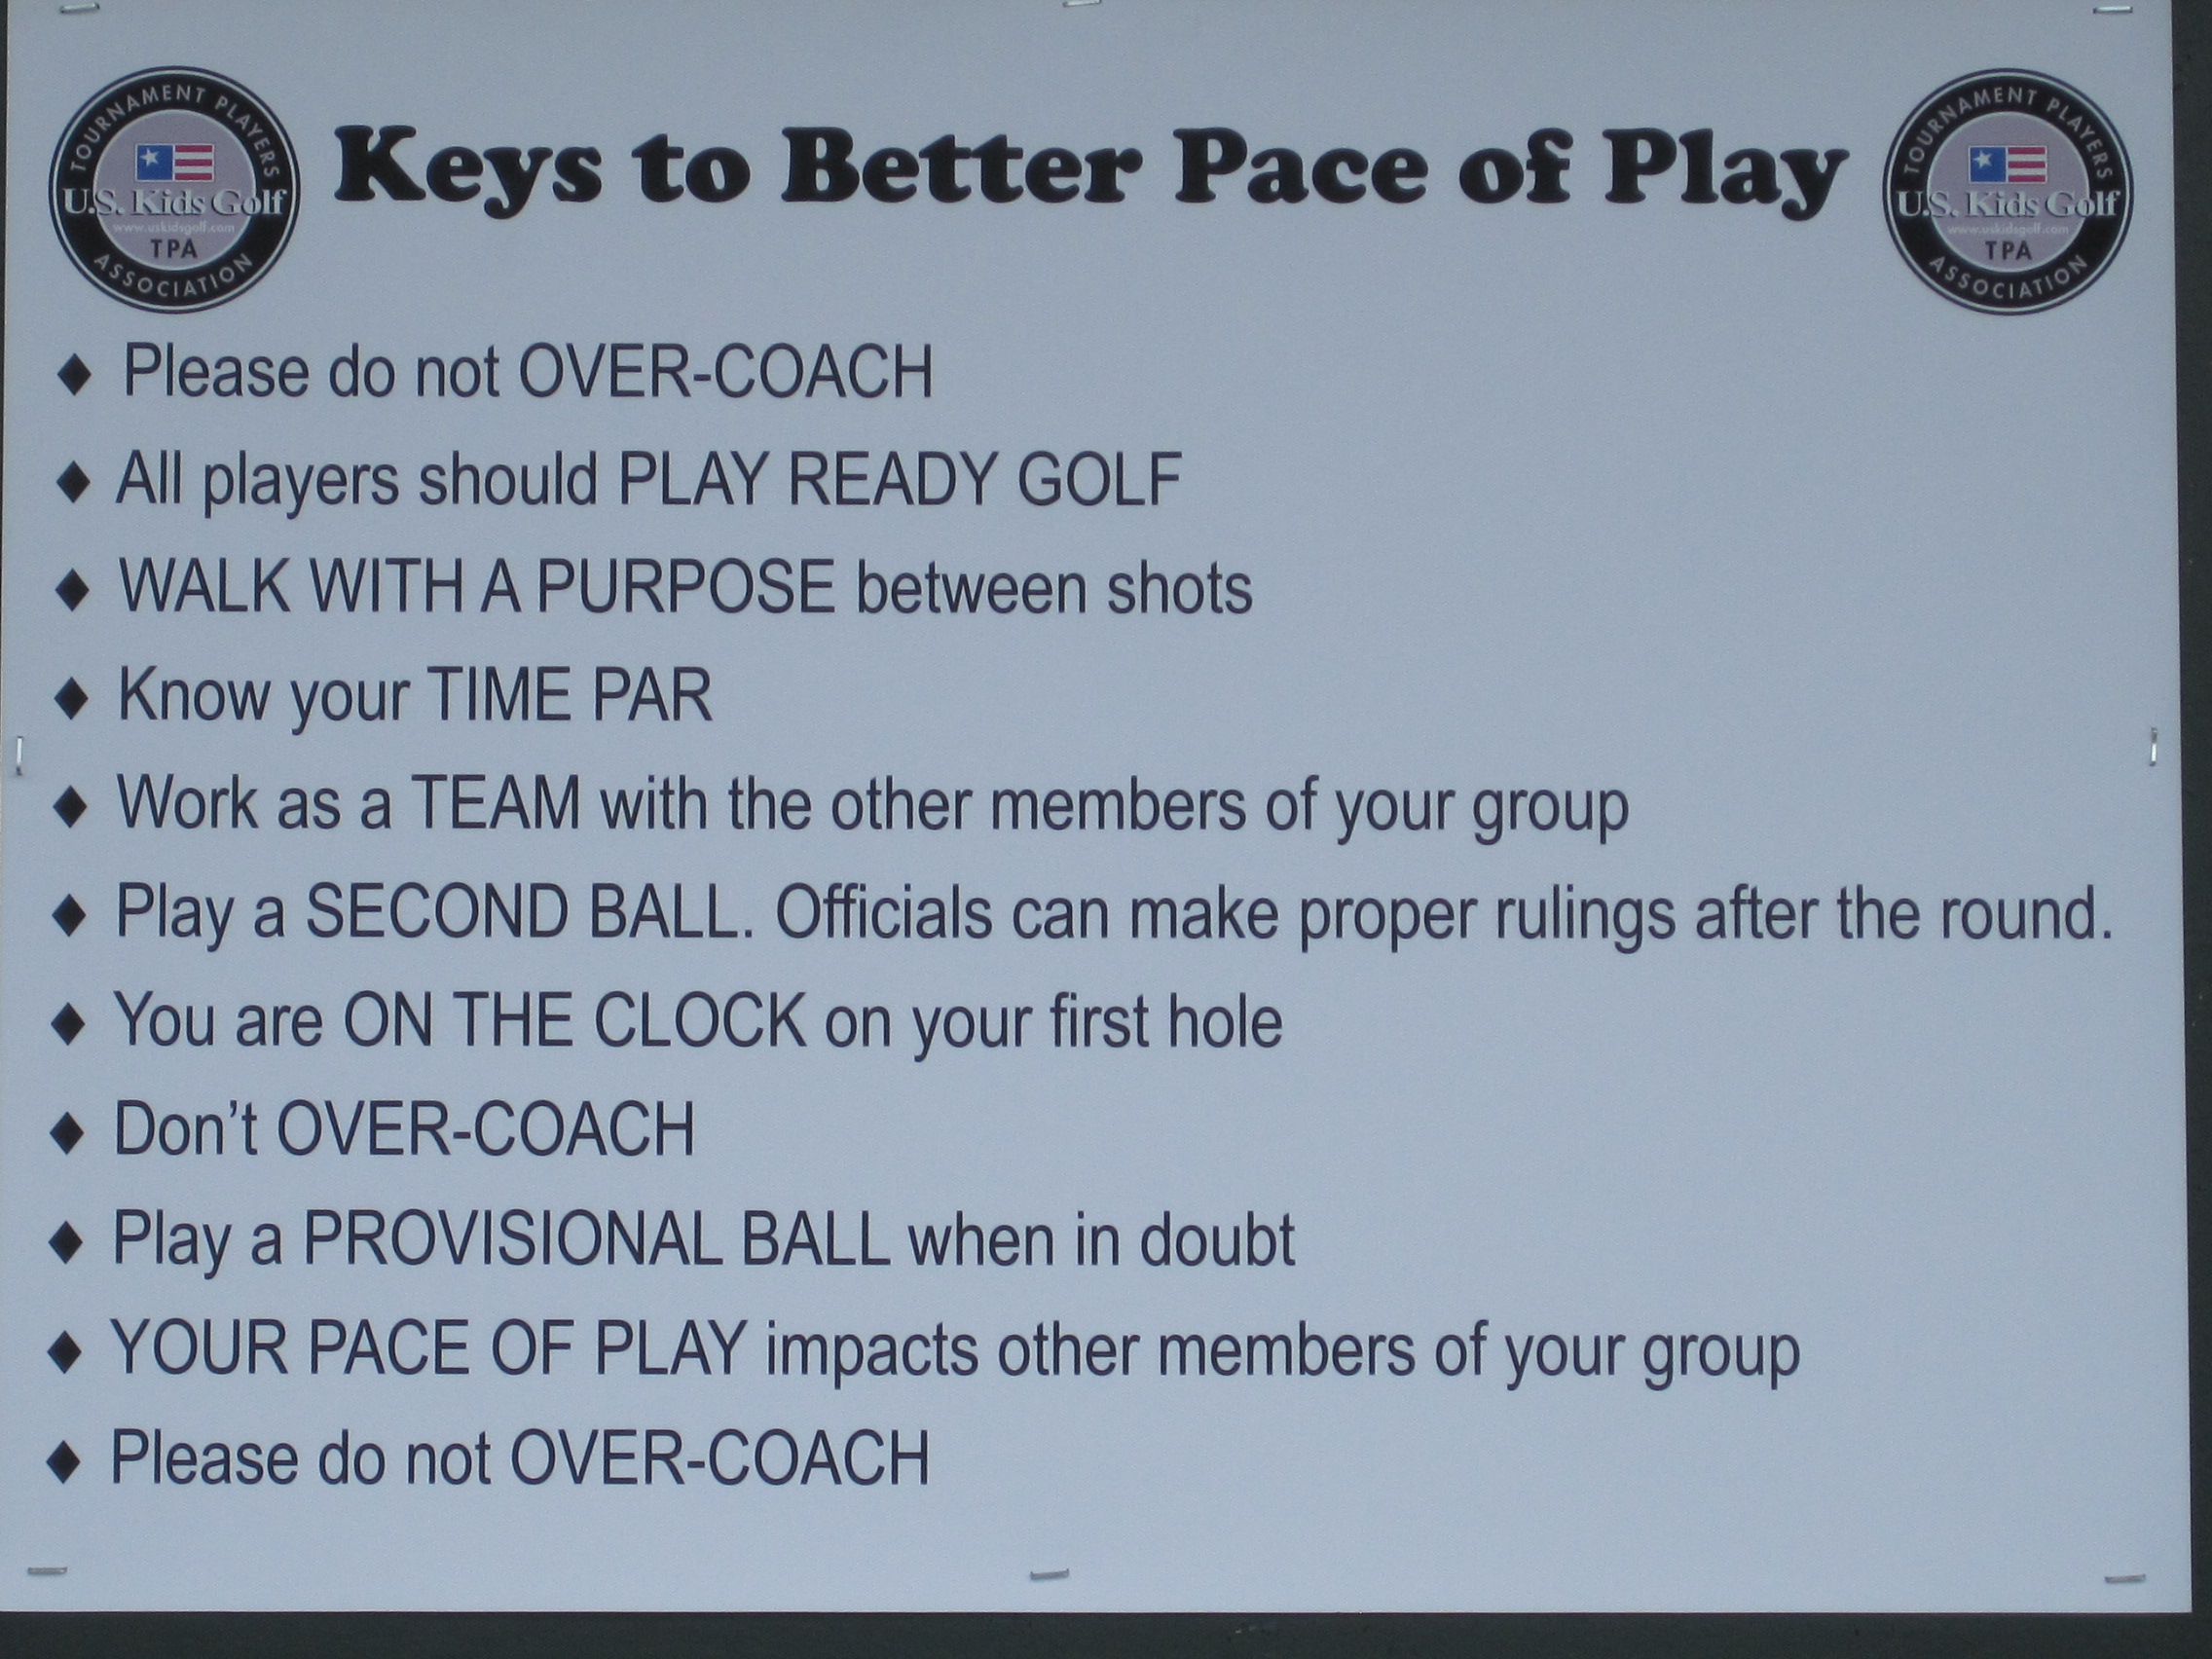 U.S. Kids Keys to Better Pace of Play